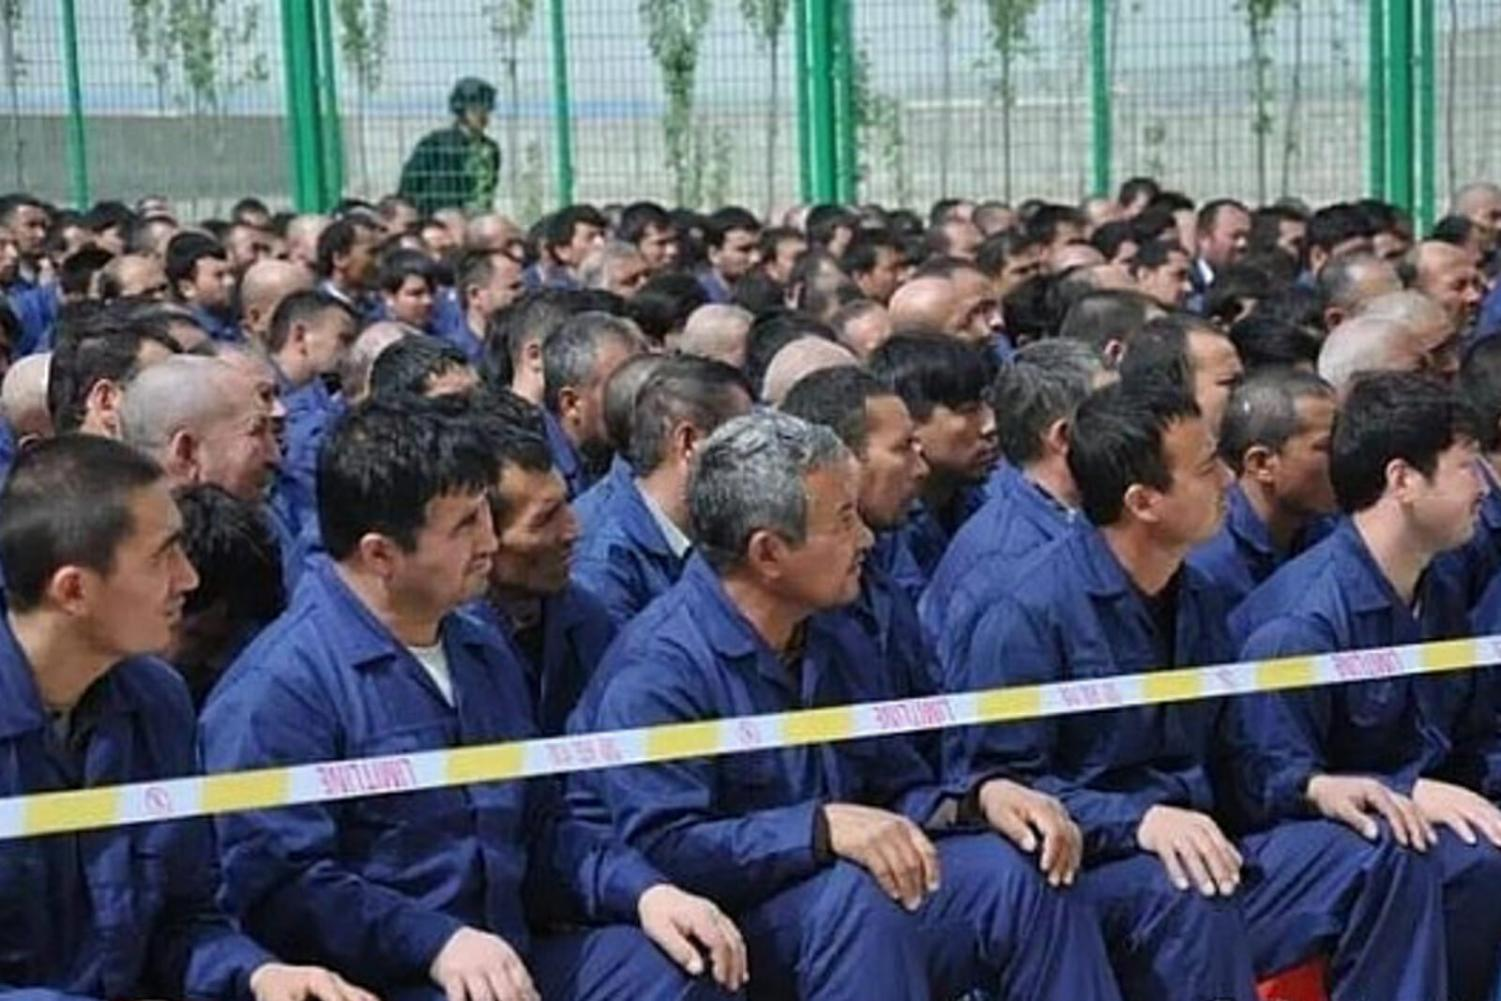 Detained Muslims sit waiting in a reeducation camp in China.